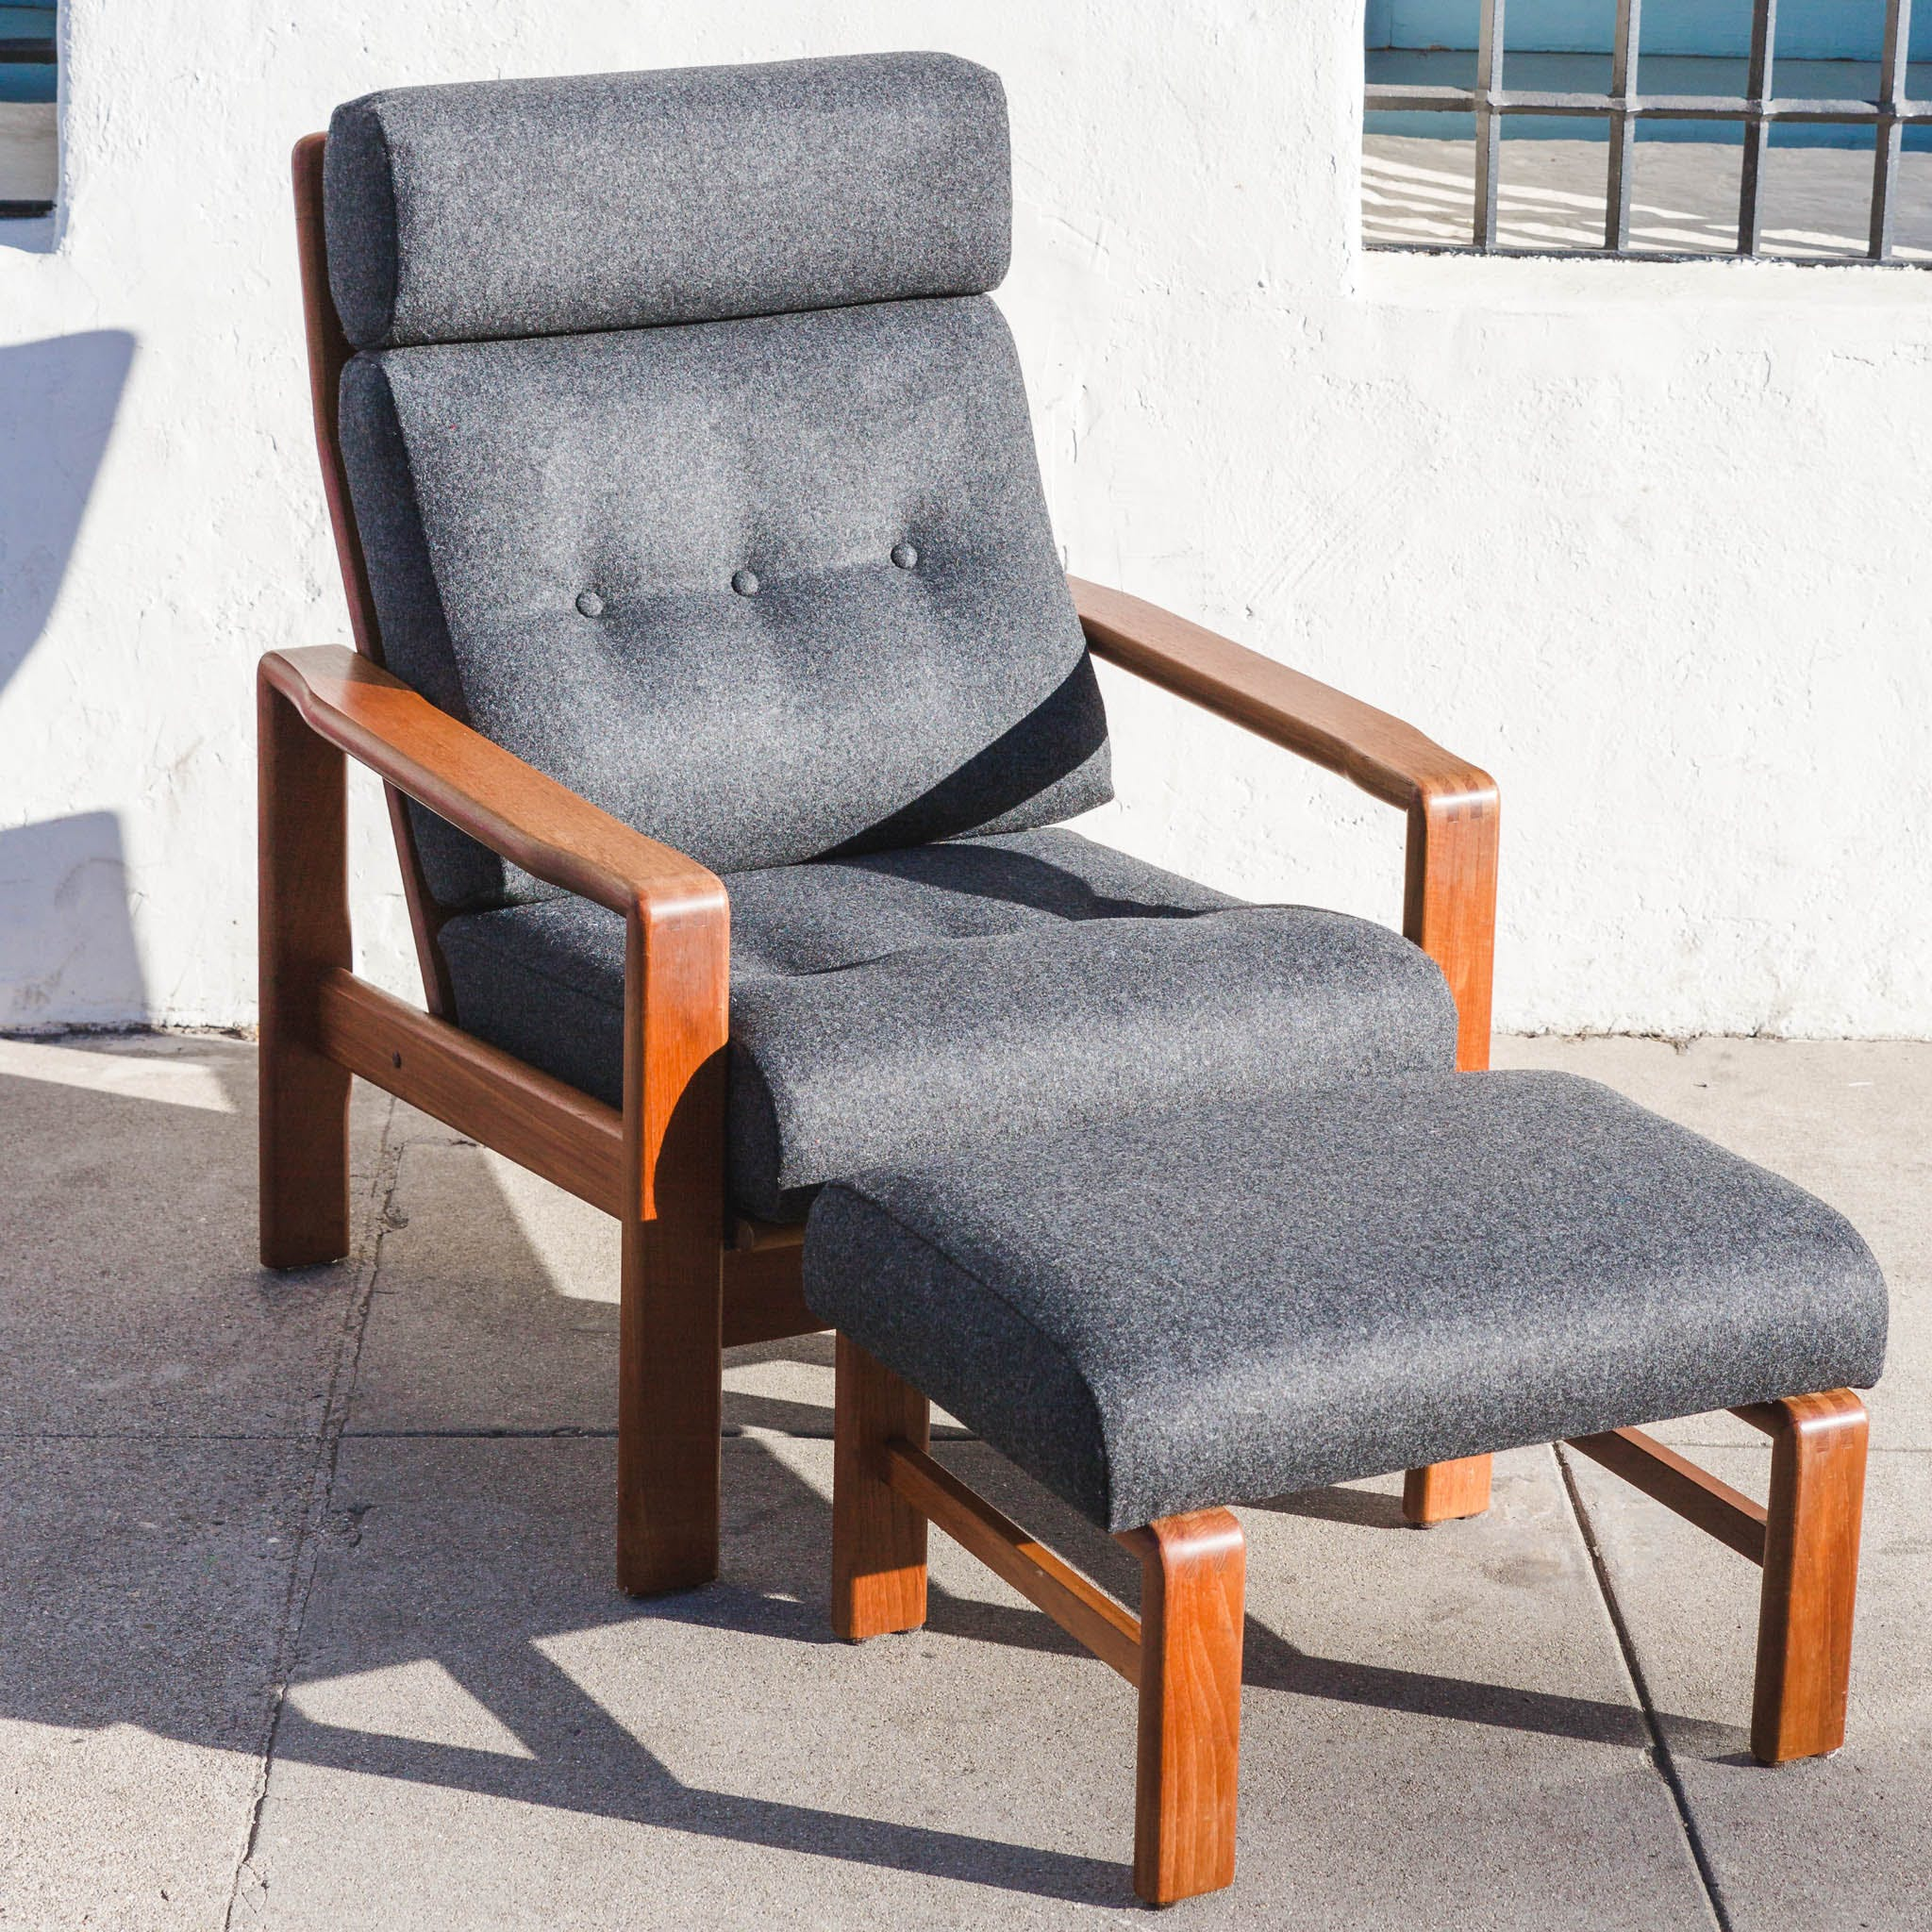 Strange Mid Century Upholstery And Teak Lounge Chair And Ottoman Pabps2019 Chair Design Images Pabps2019Com